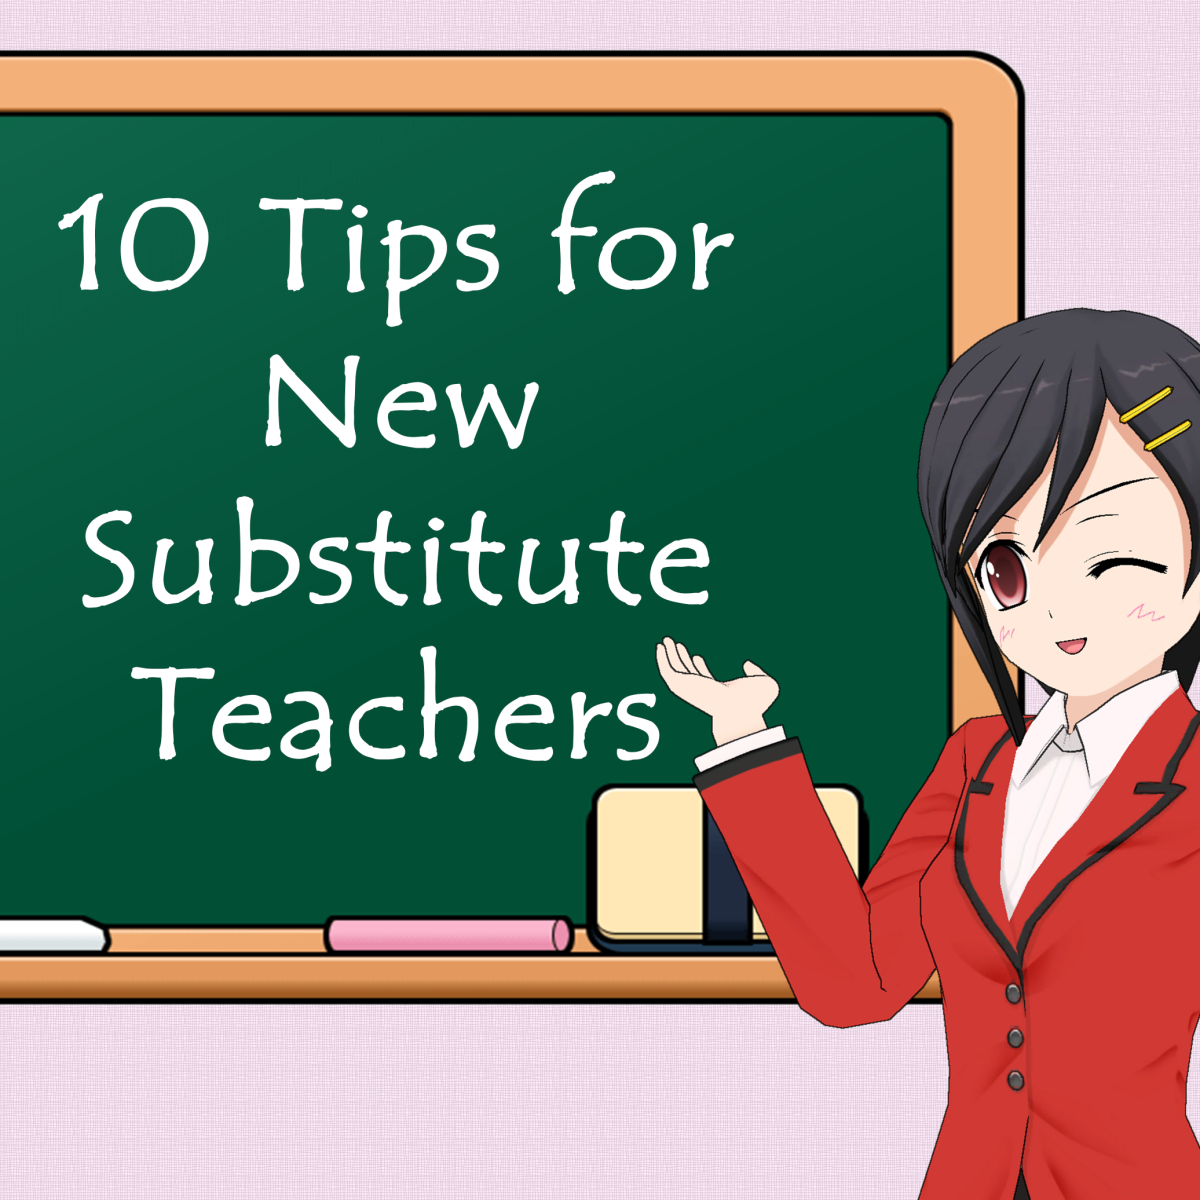 10 Tips for New Substitute Teachers